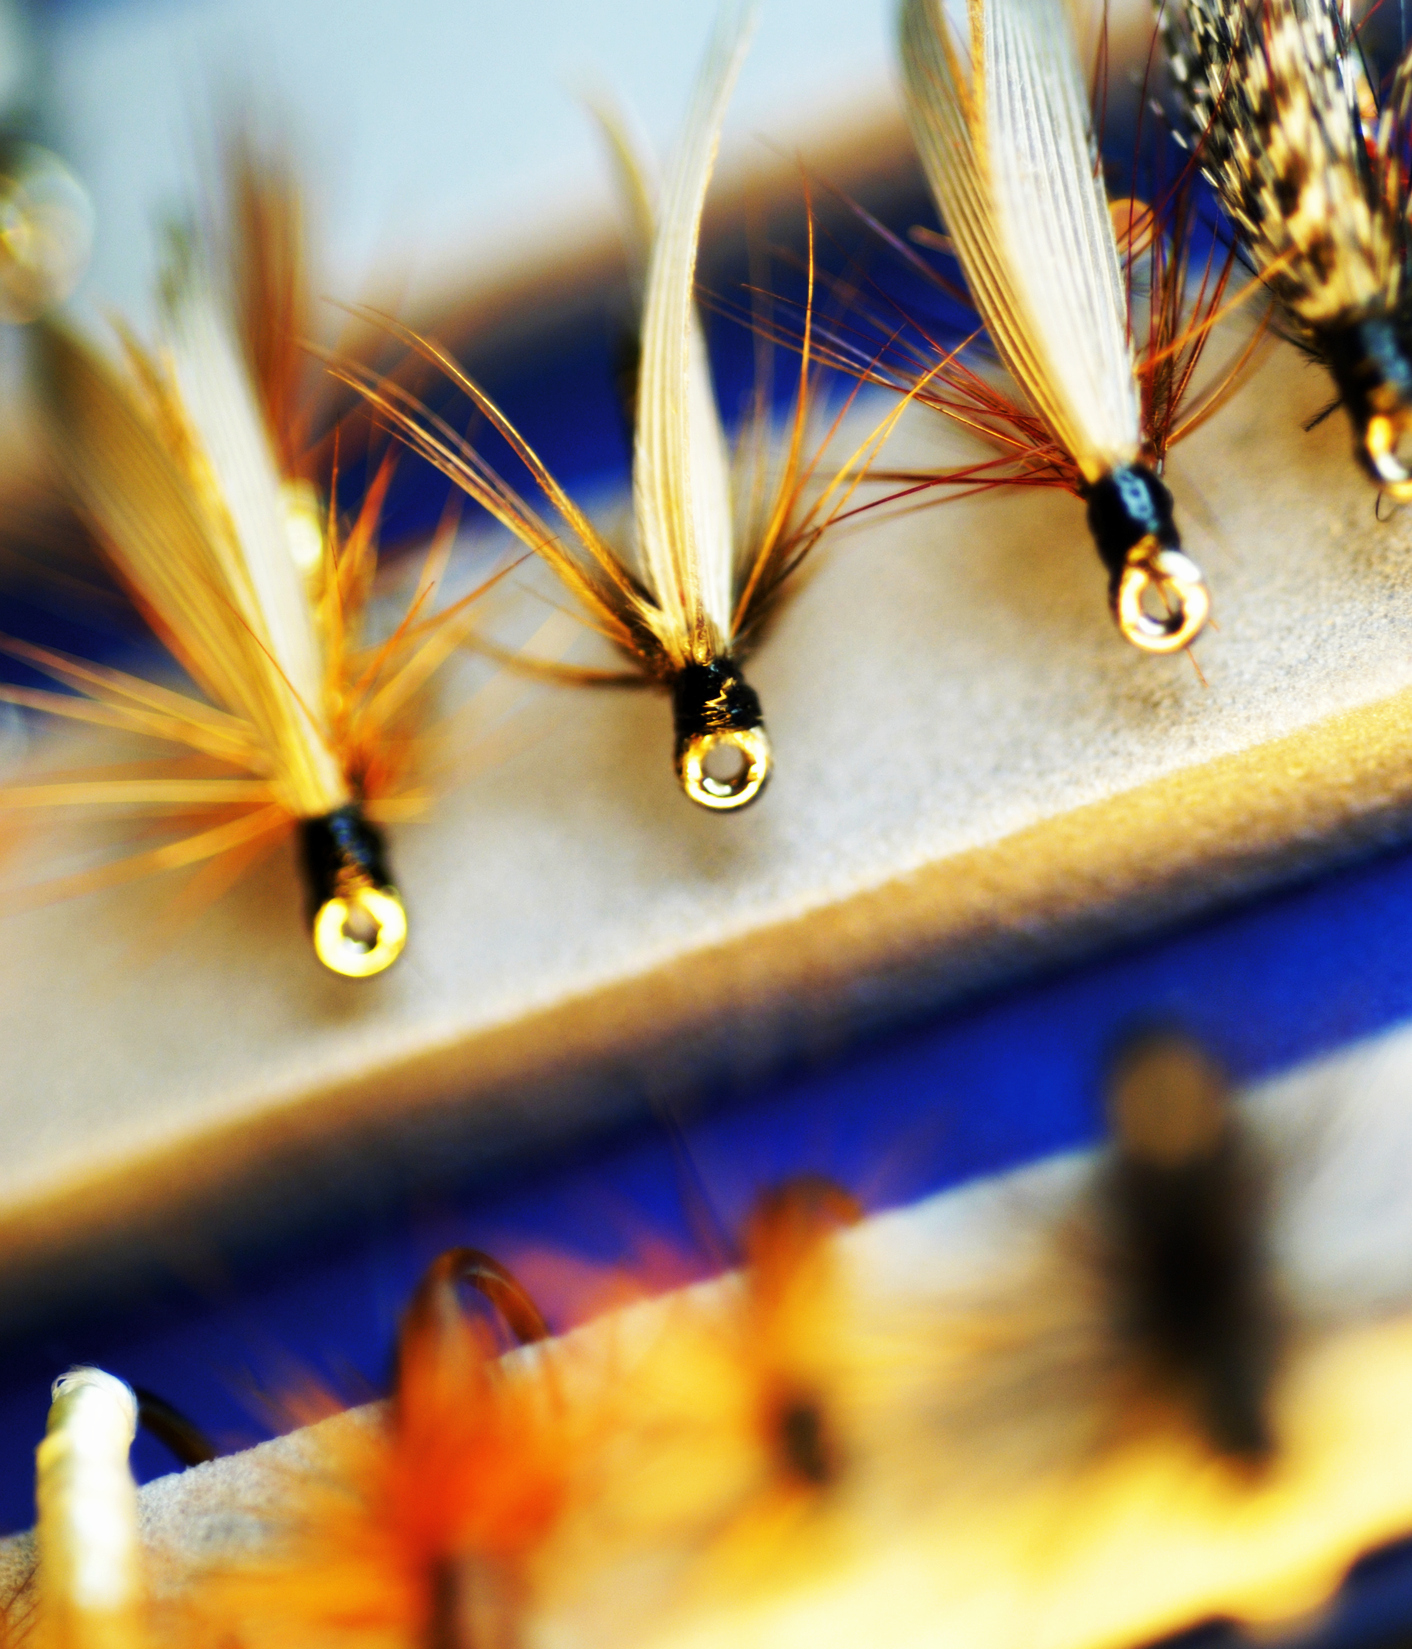 fishing tips: bait secrets fishing lures | the old farmer's almanac, Fishing Bait